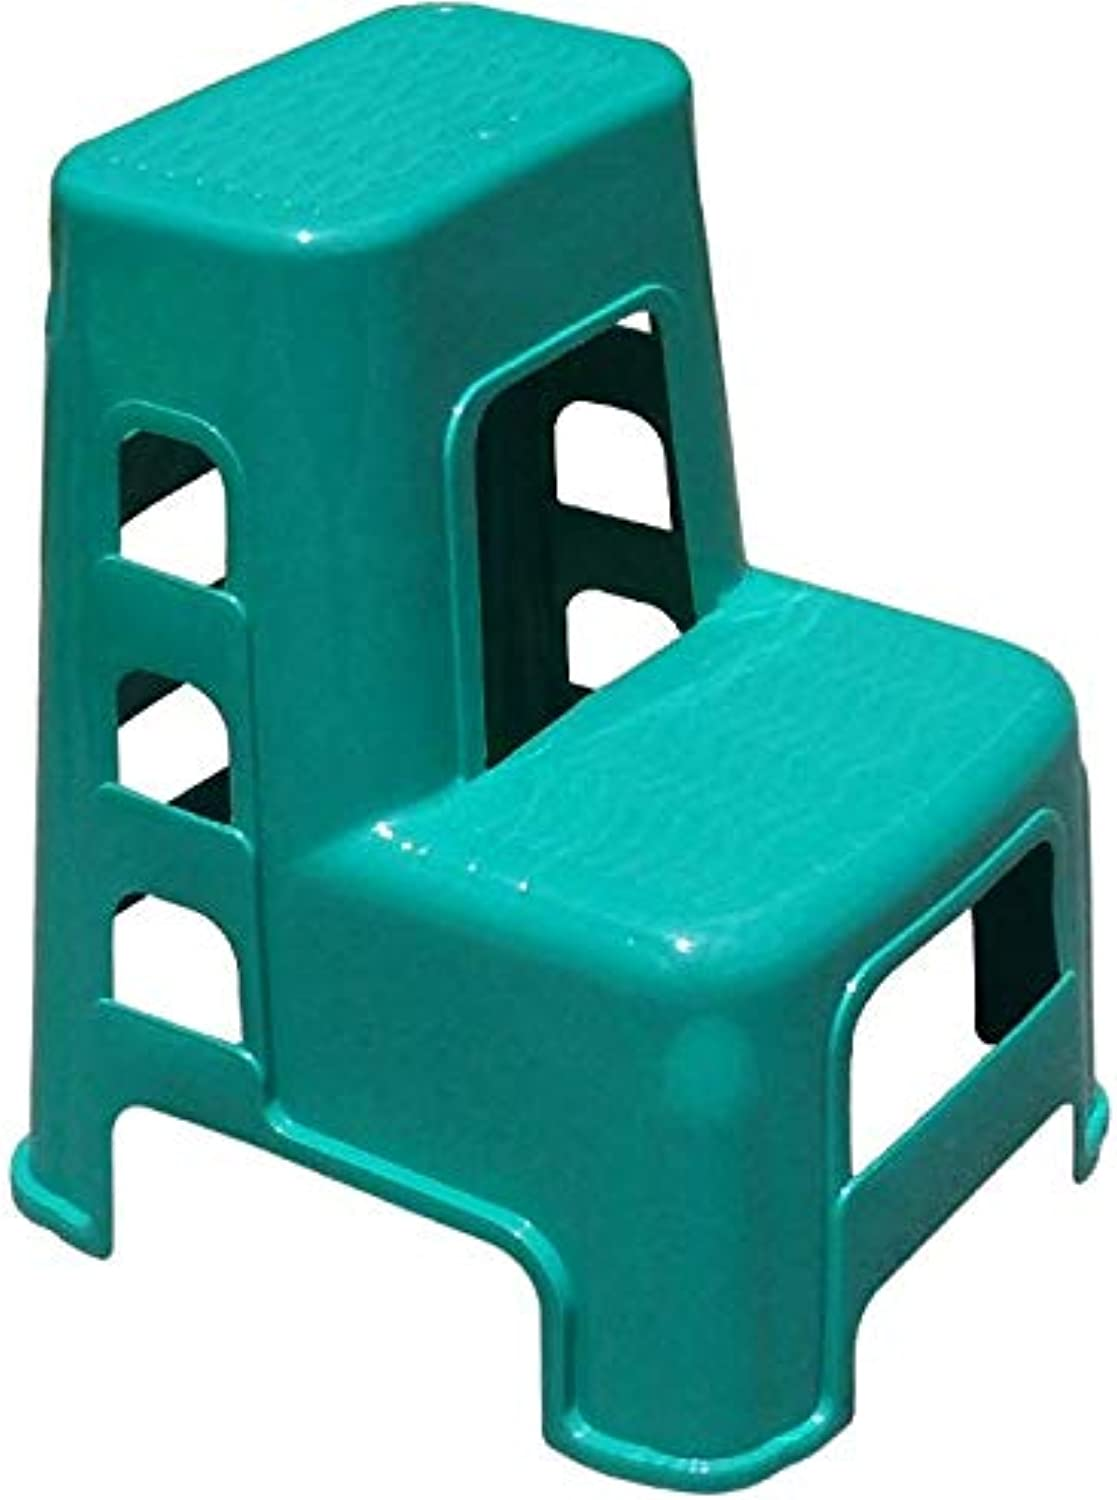 Step Stool, Plastic Two-Step High and Low Car Wash Stool, Home Kitchen Bedroom Stair Stool, Adult Portable Step Foot Mat,Green